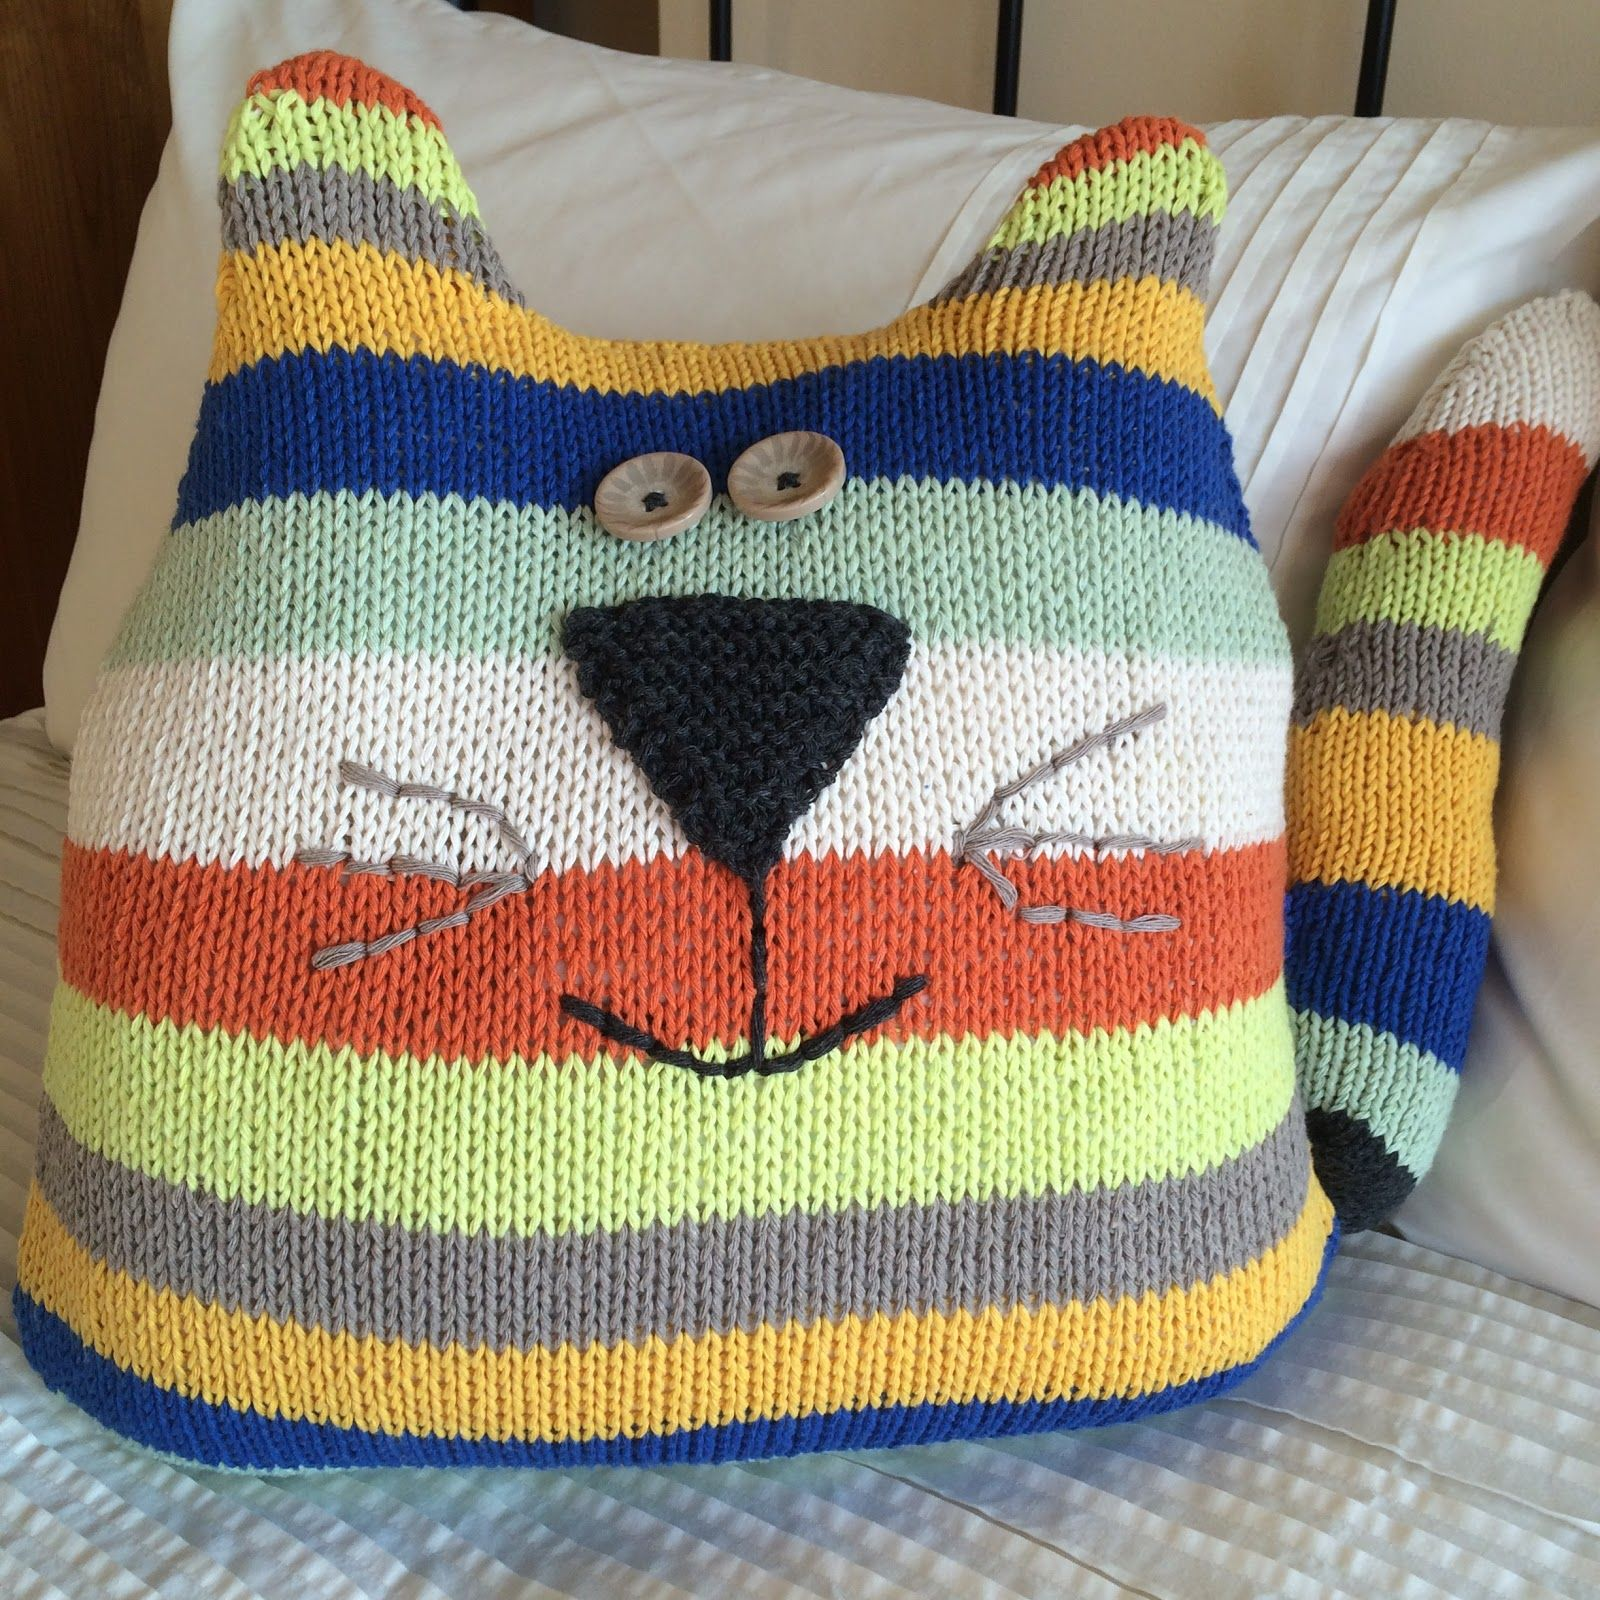 Knitting - Cat Cushion (With images) | Knitted cushions ...